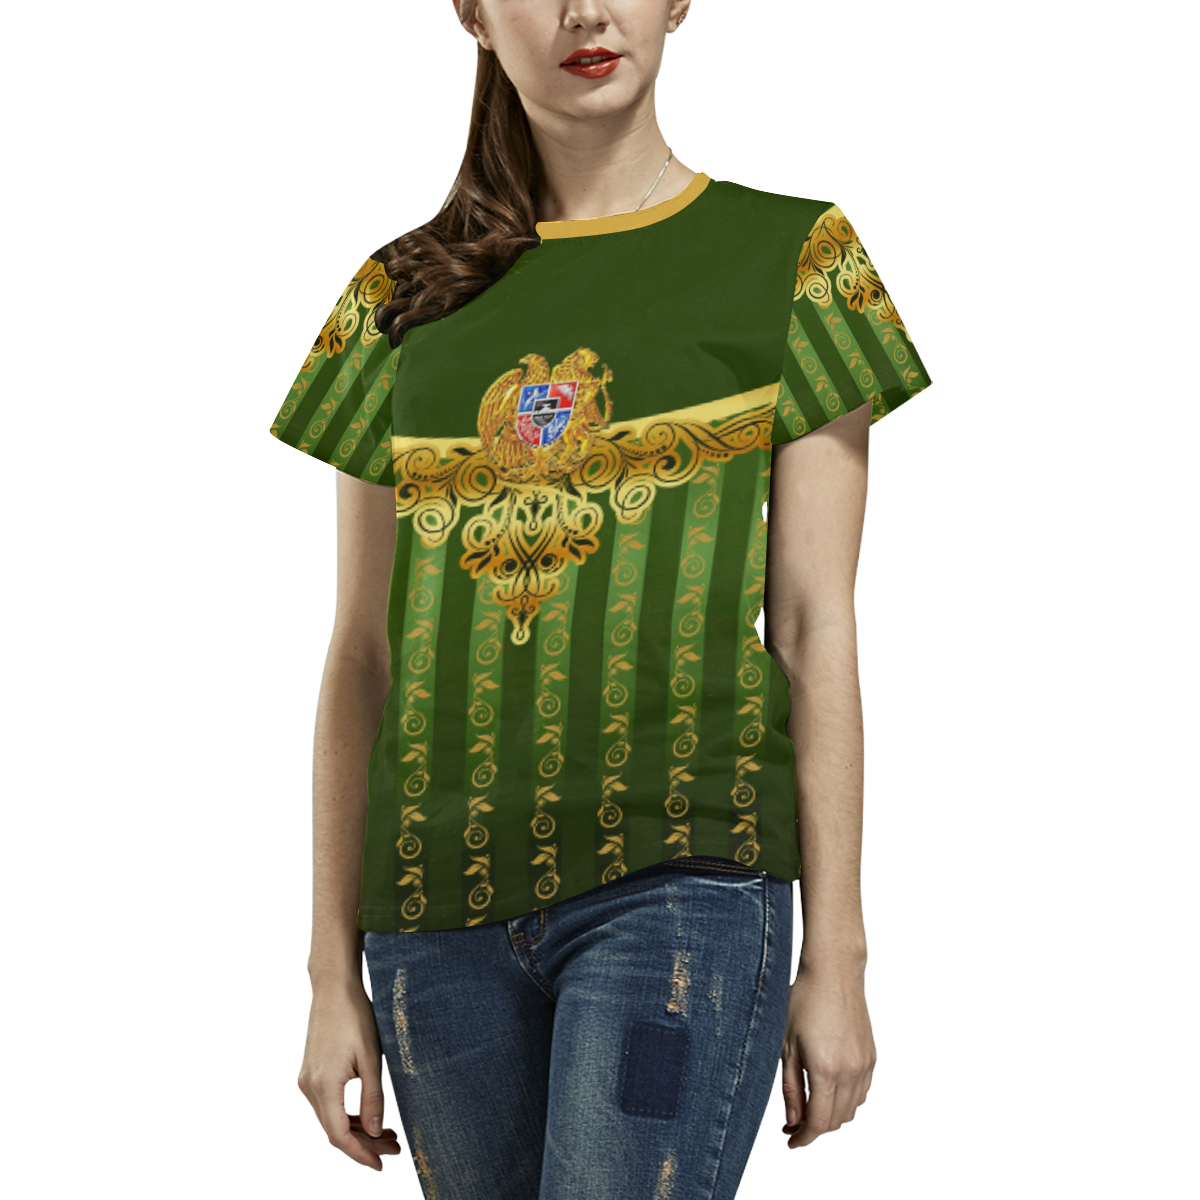 Coat of arms of Armenia All Over Print T-shirt for Women/Large Size (USA Size) (Model T40)